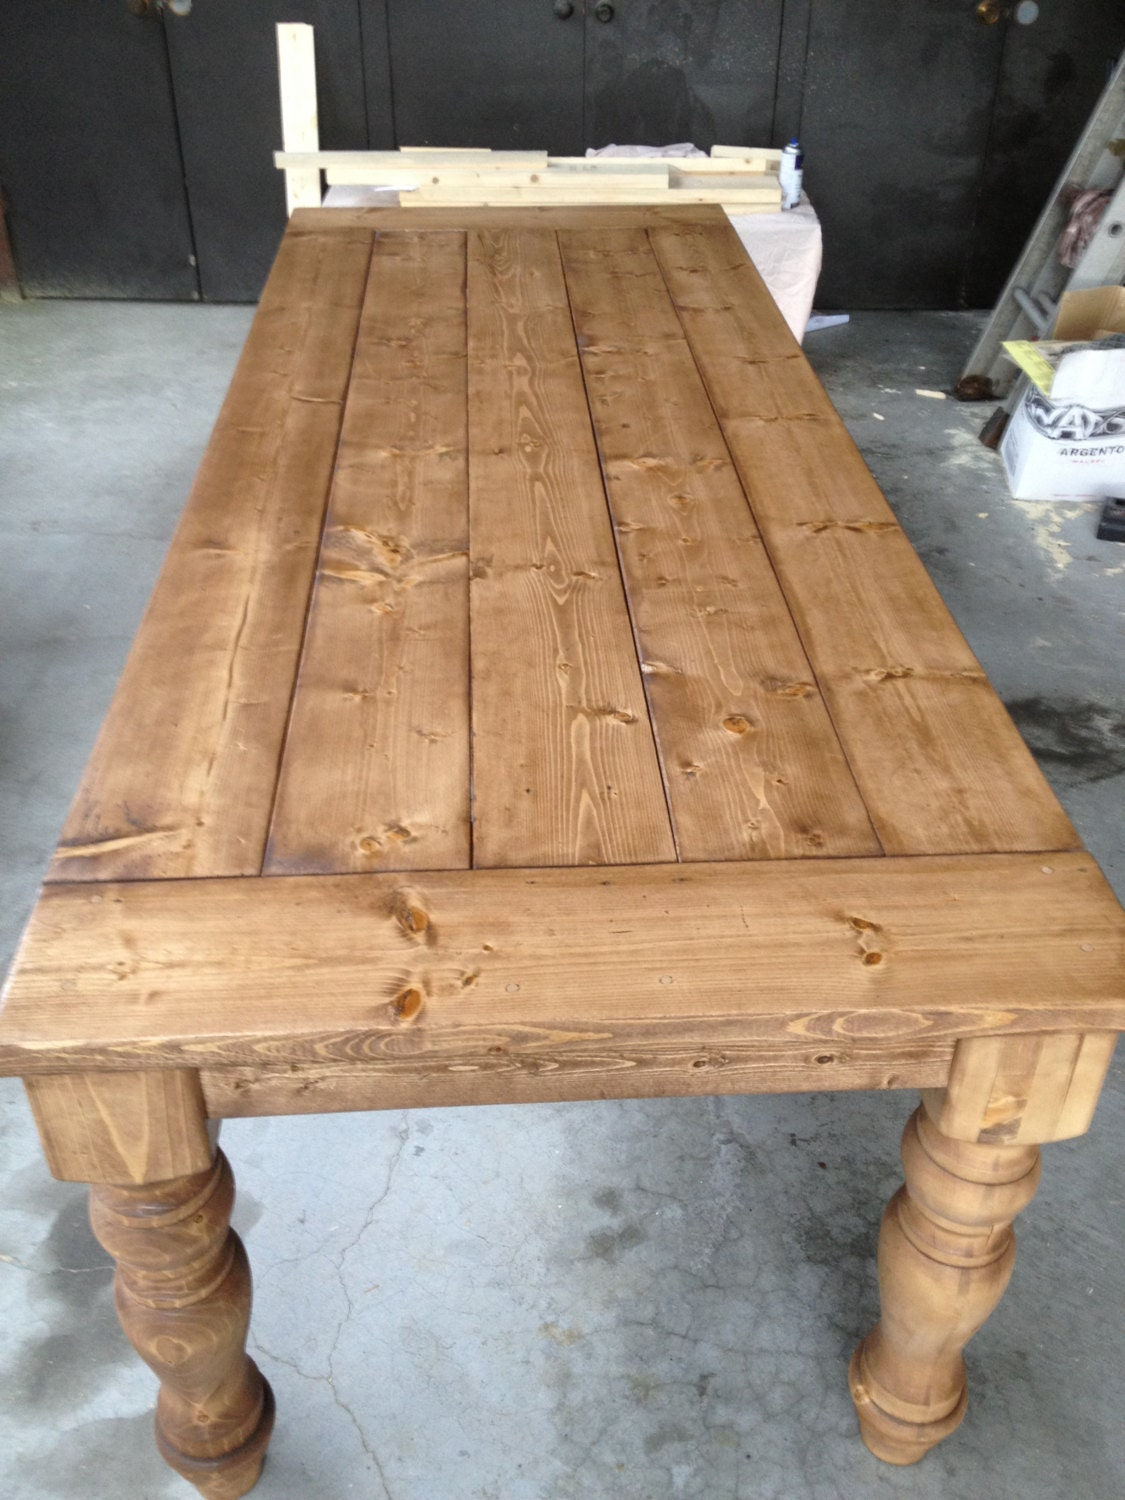 Farmhouse Dining Table With Handturned Legs